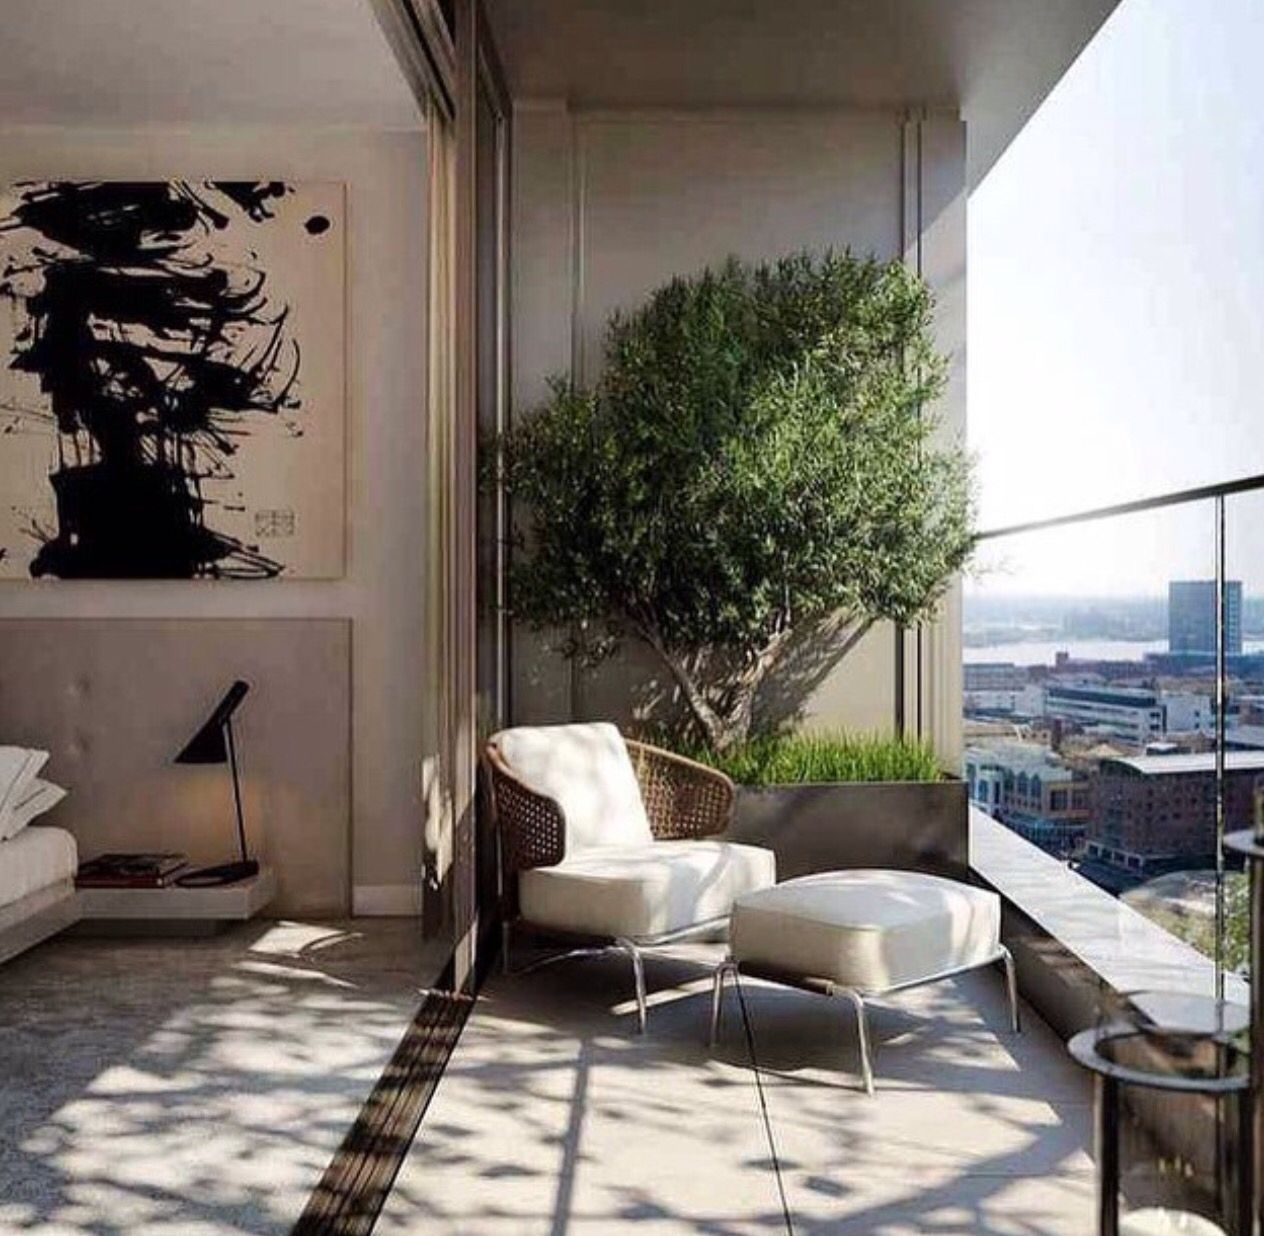 Urban garden planting trough w tree on city view for Terrace interior design ideas